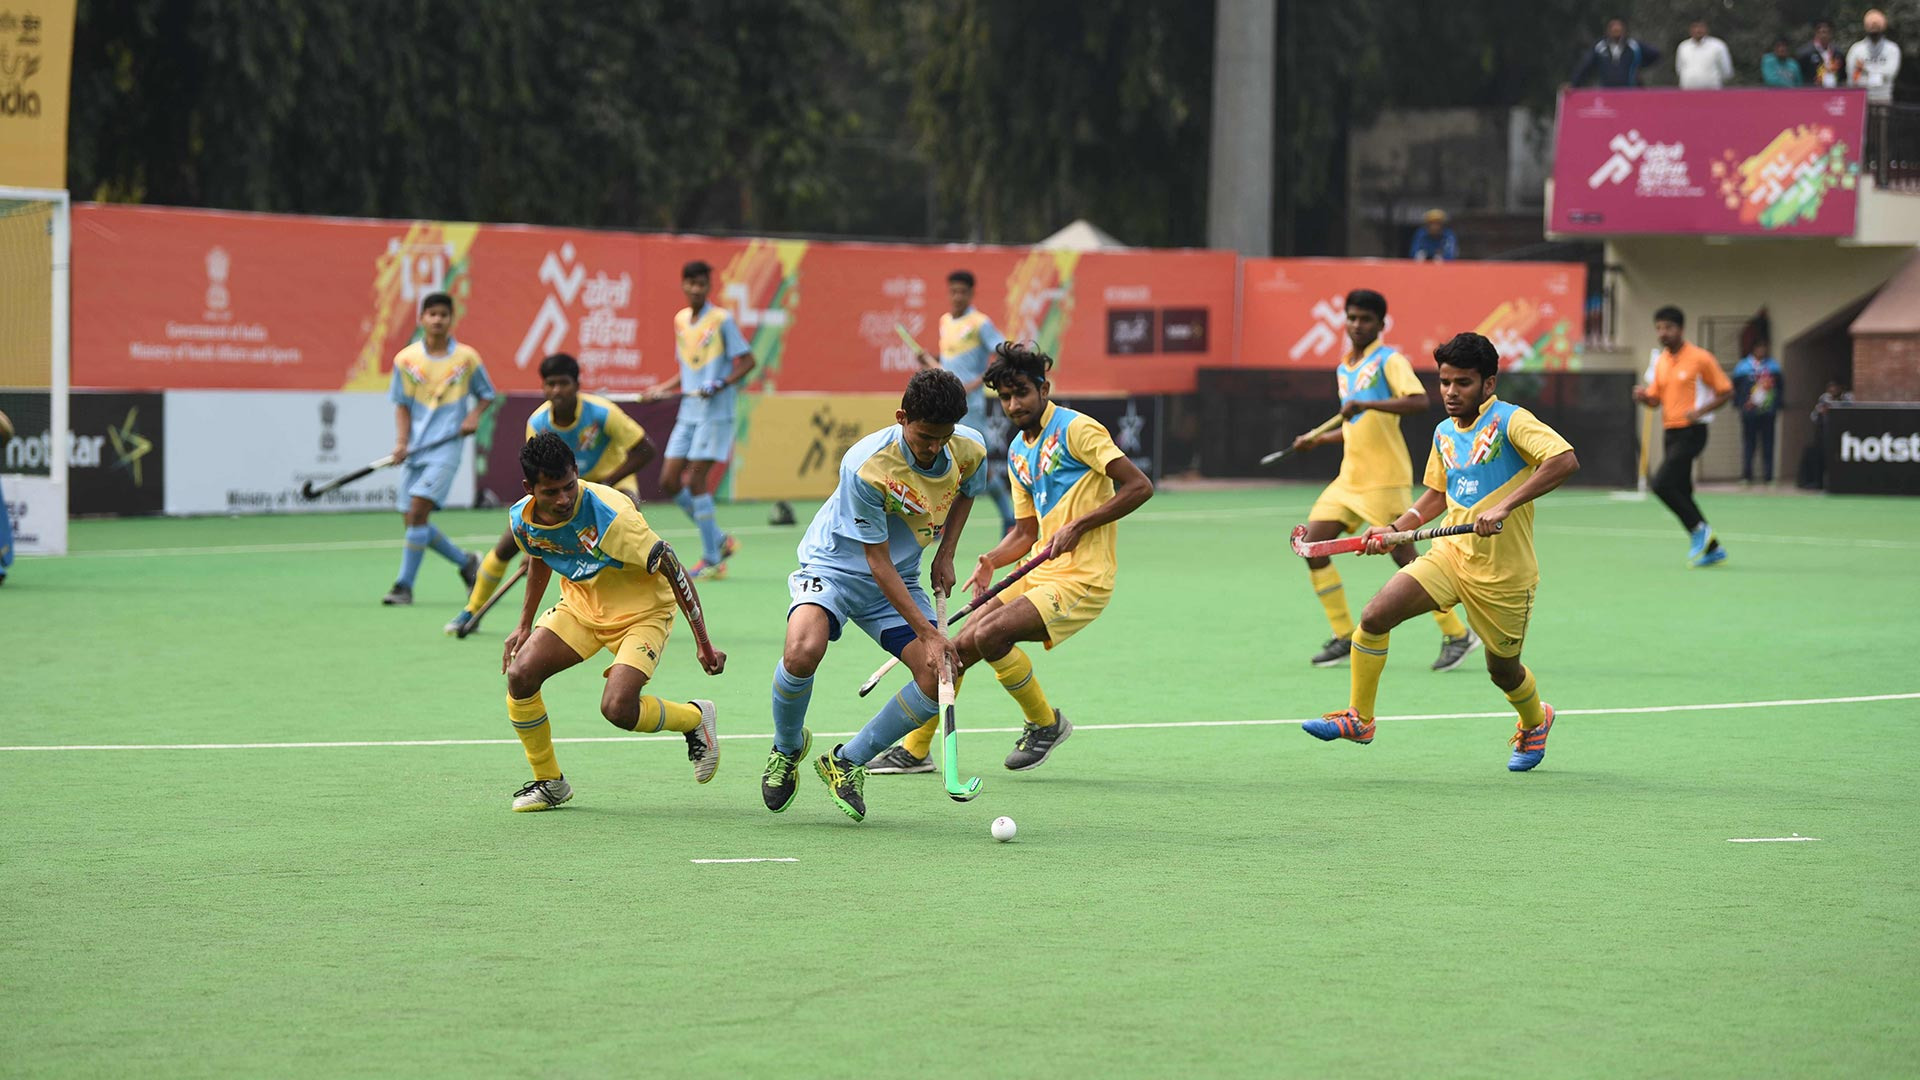 Hockey semis in Khelo India School Games